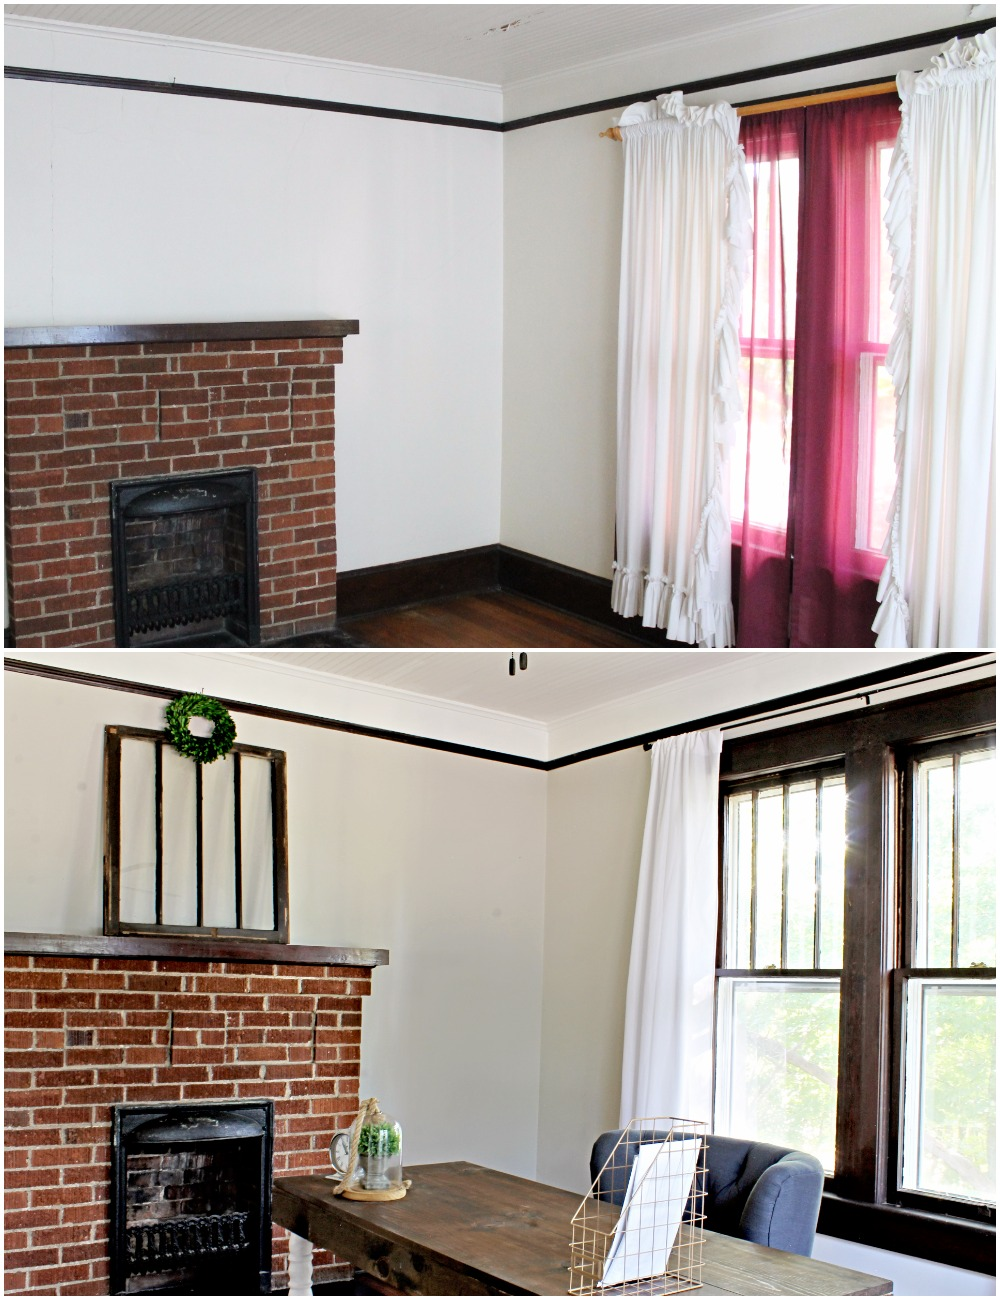 House Flipping Before and Afters - DIY OFFICE BUDGET DECORATING IDEAS (1).jpg